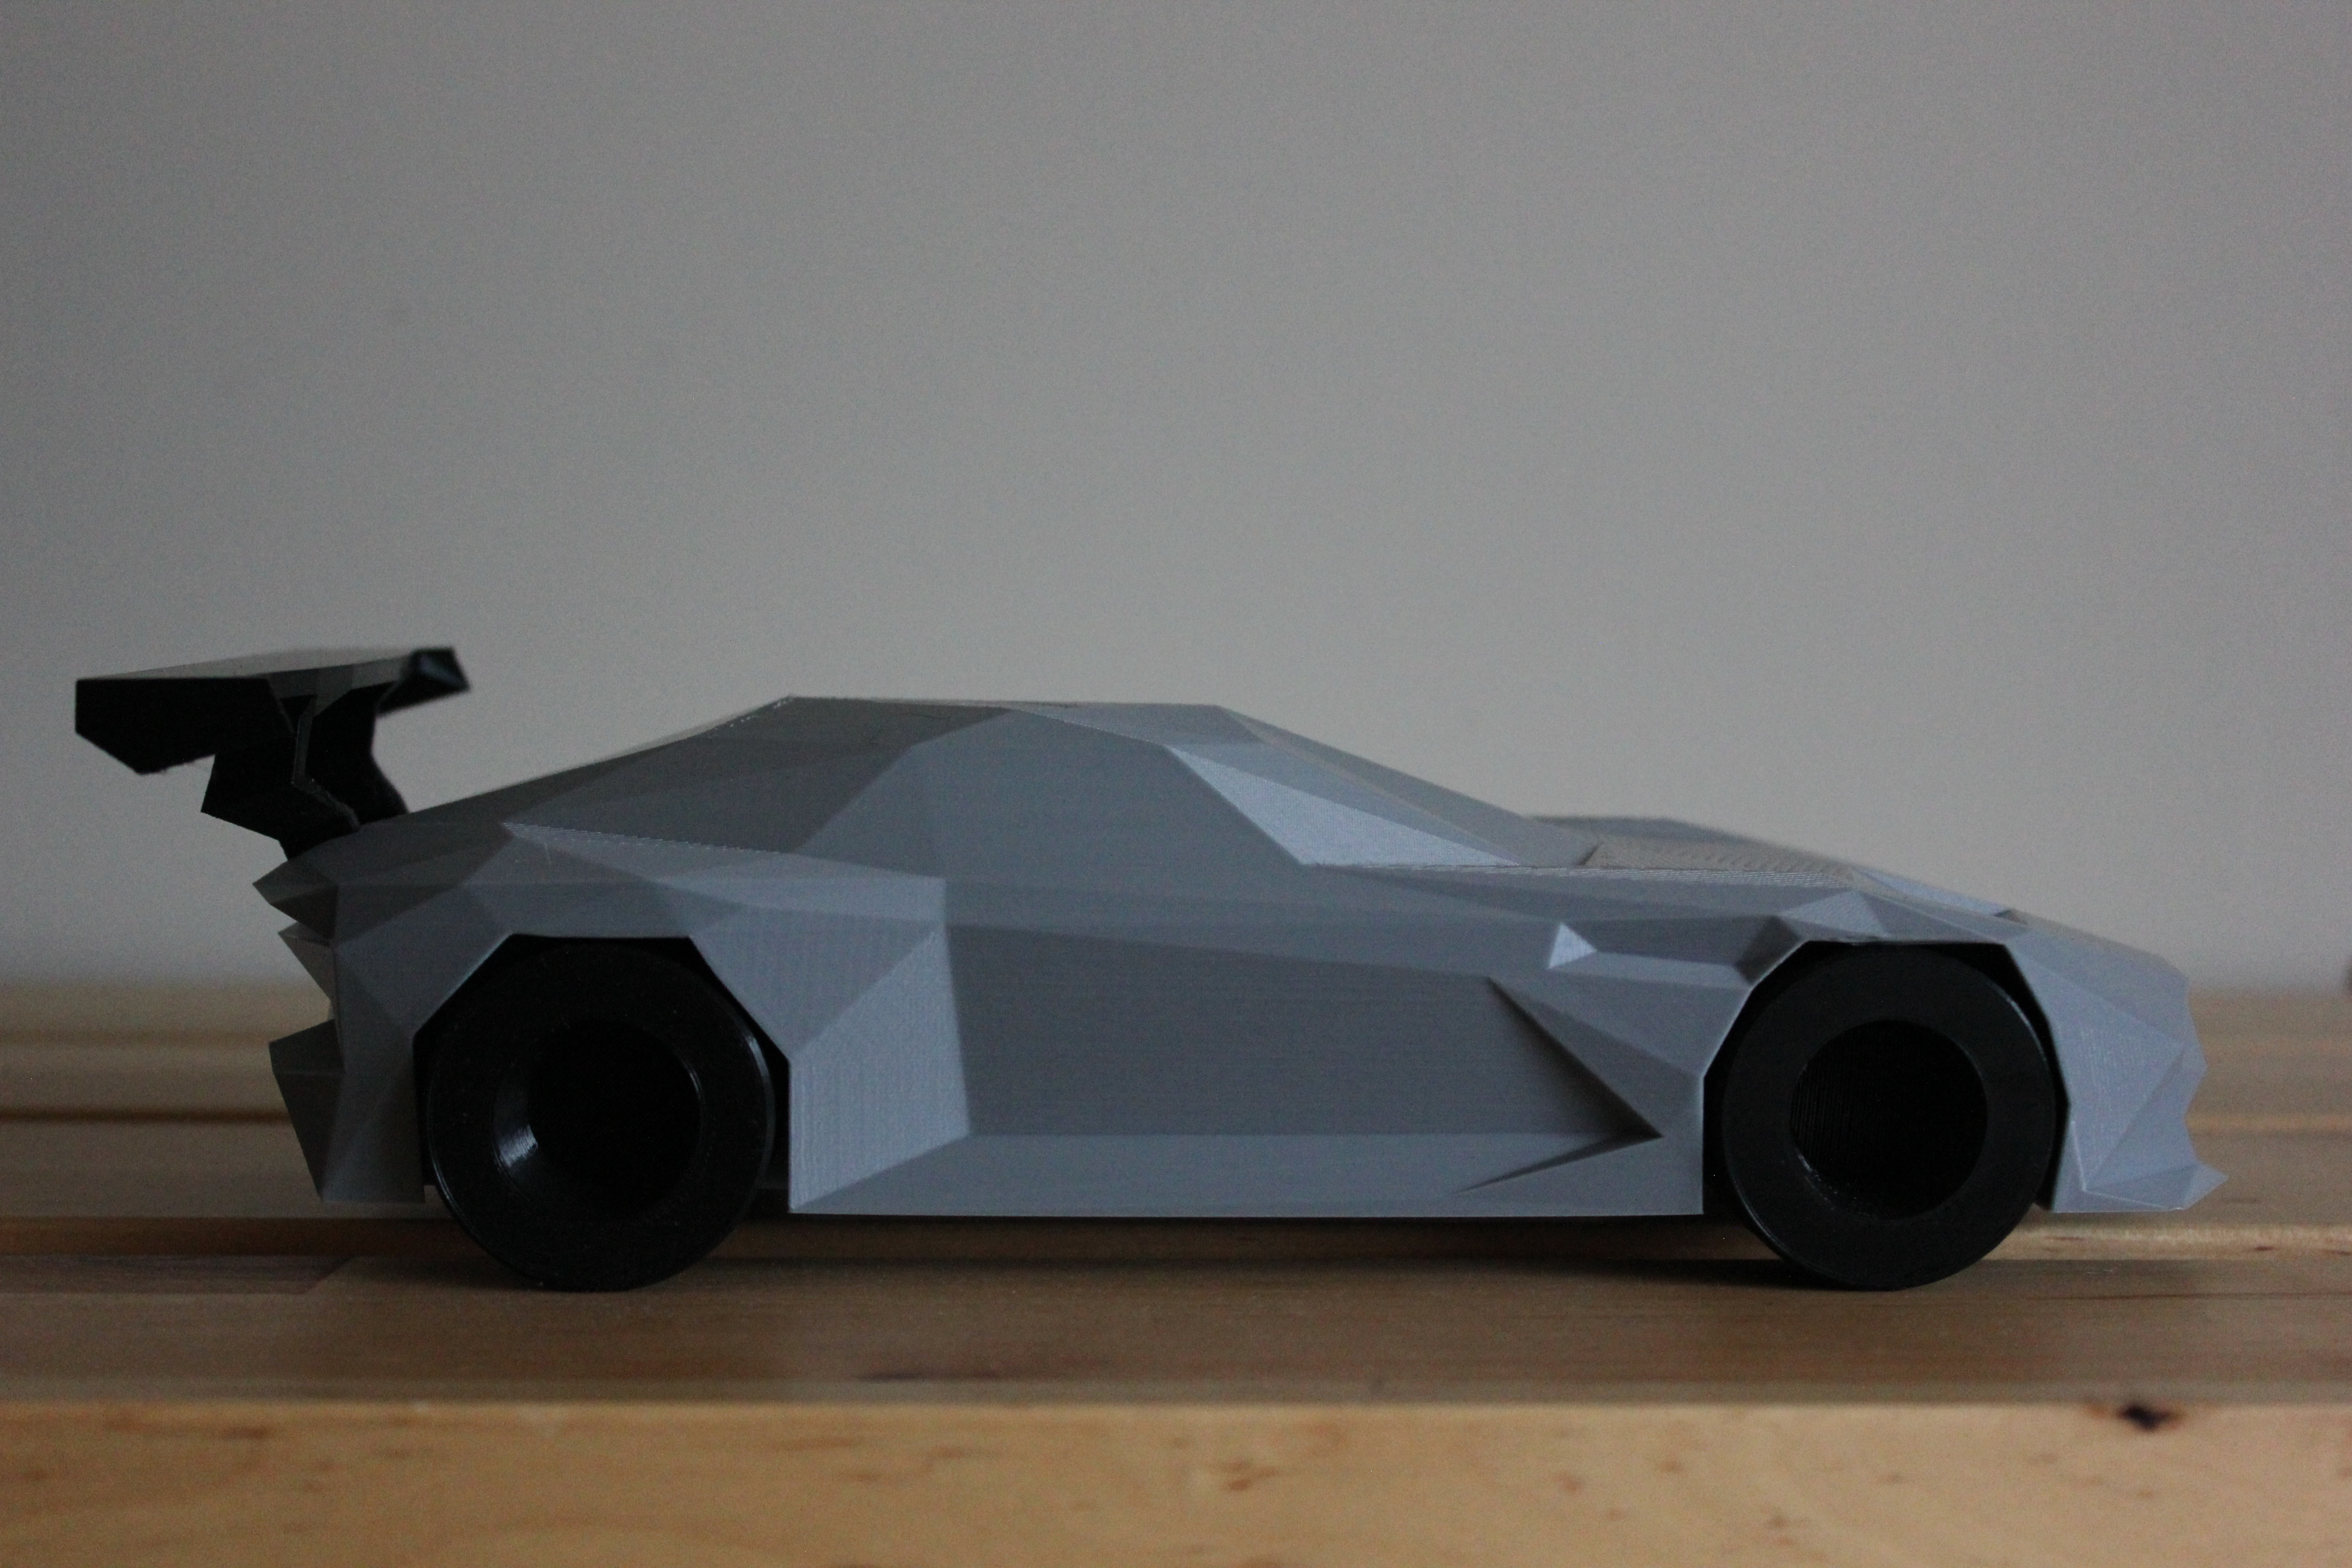 3D Printed Low-Poly Aston Martin Vulcan by DominimaDesign